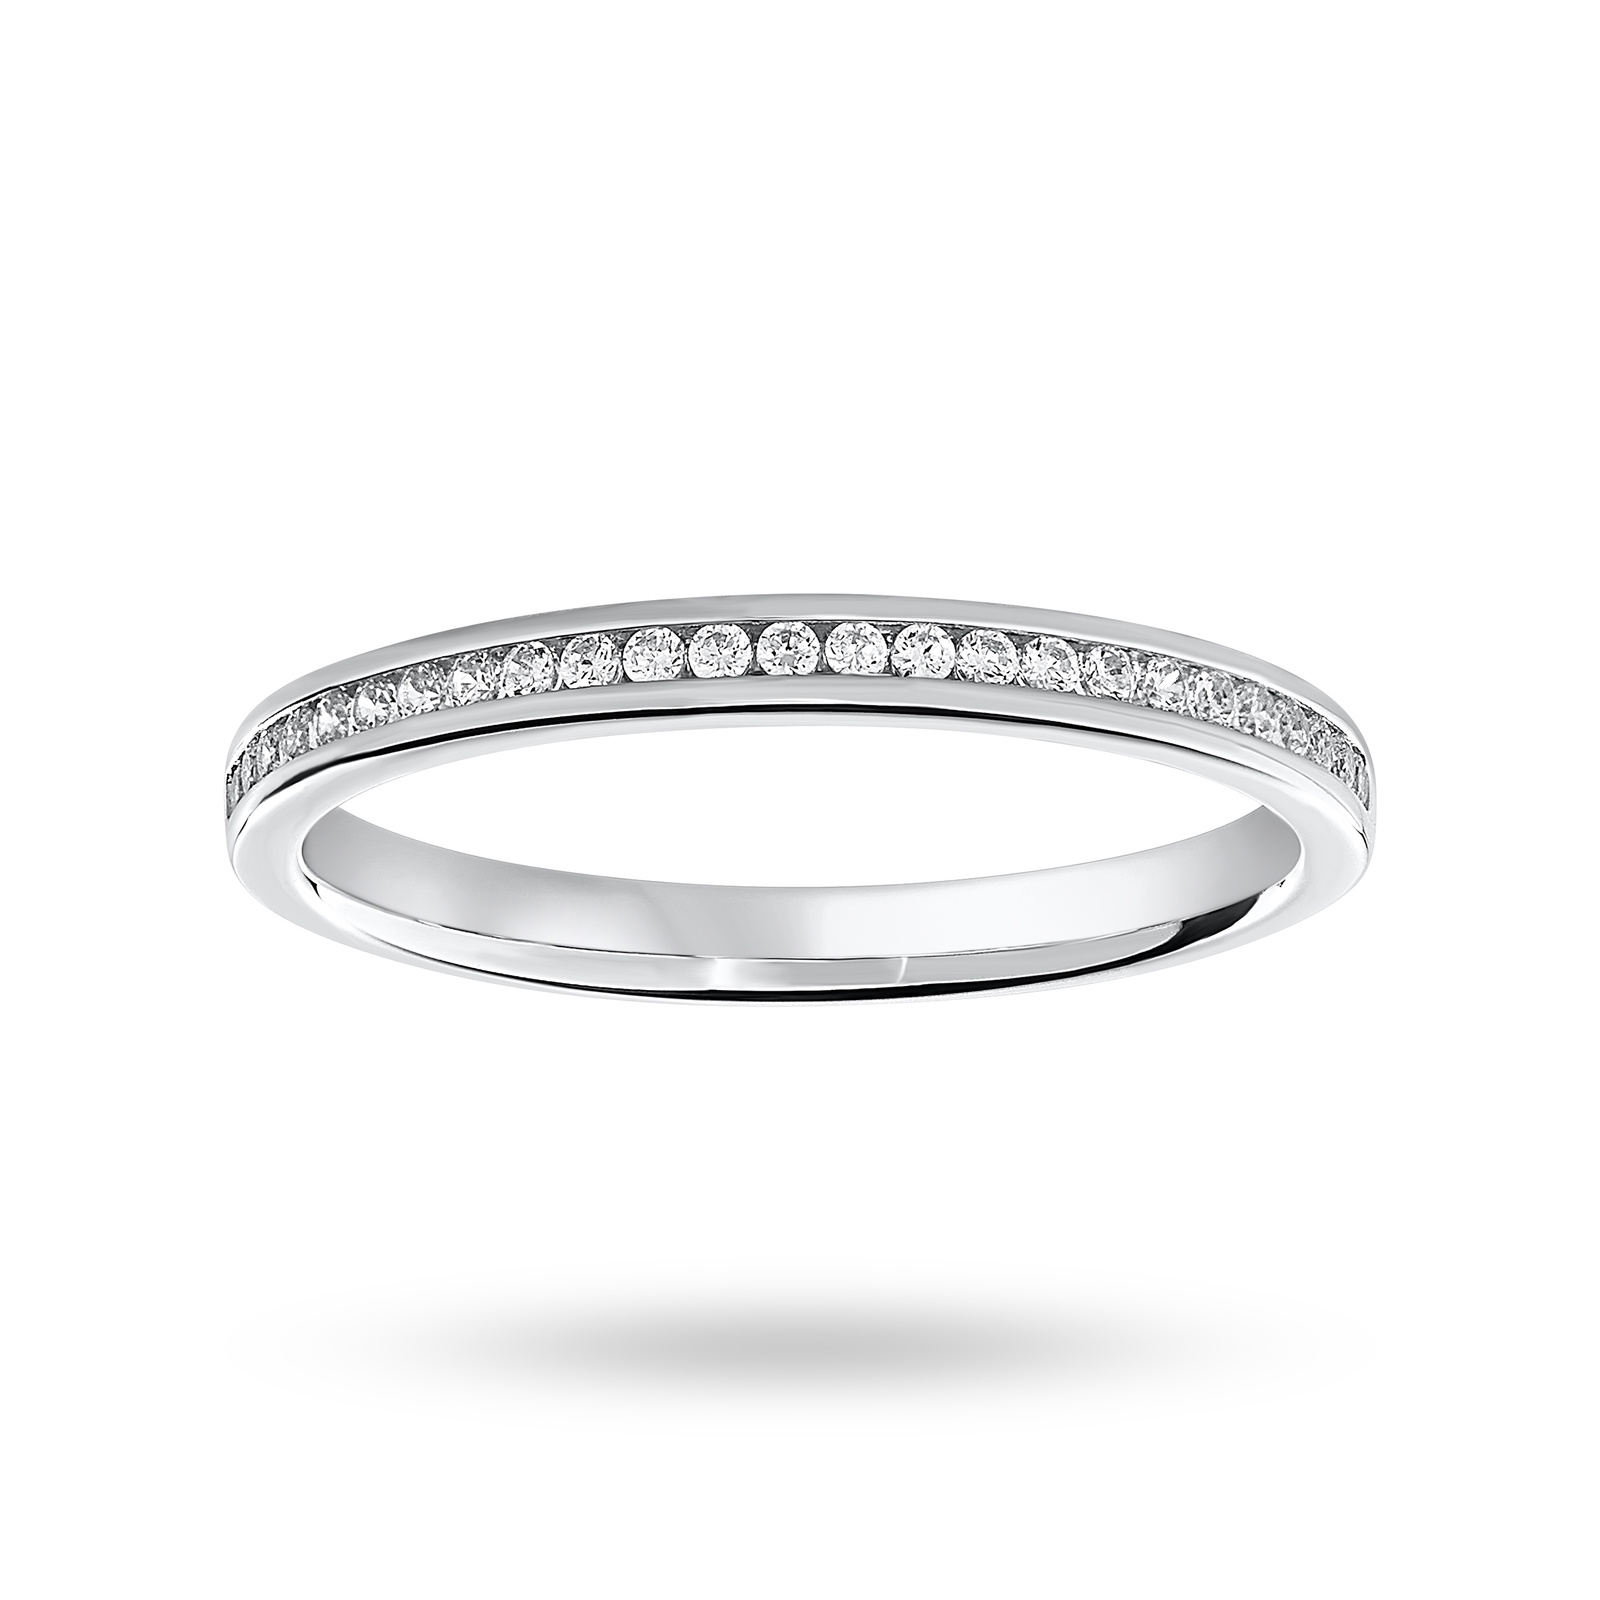 18 Carat White Gold 0.15 Carat Brilliant Cut Half Eternity Ring